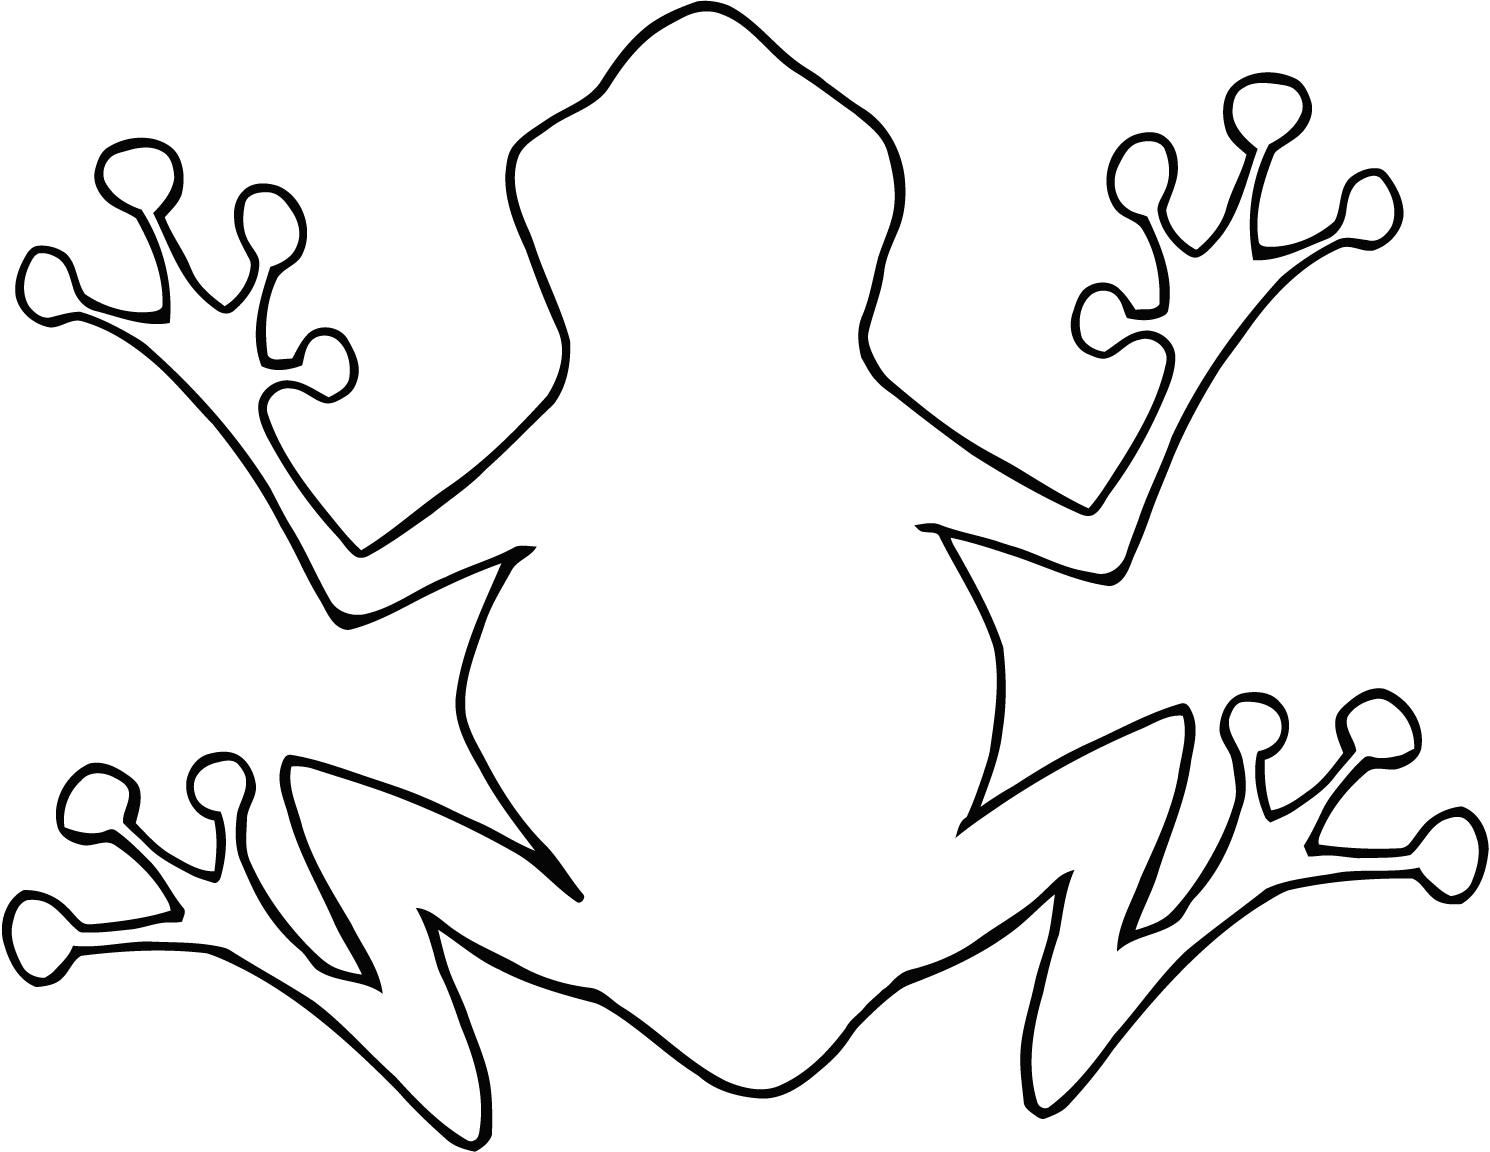 photograph regarding Frog Template Printable called Tree Frog Determine Clipart Panda - Free of charge Clipart Shots